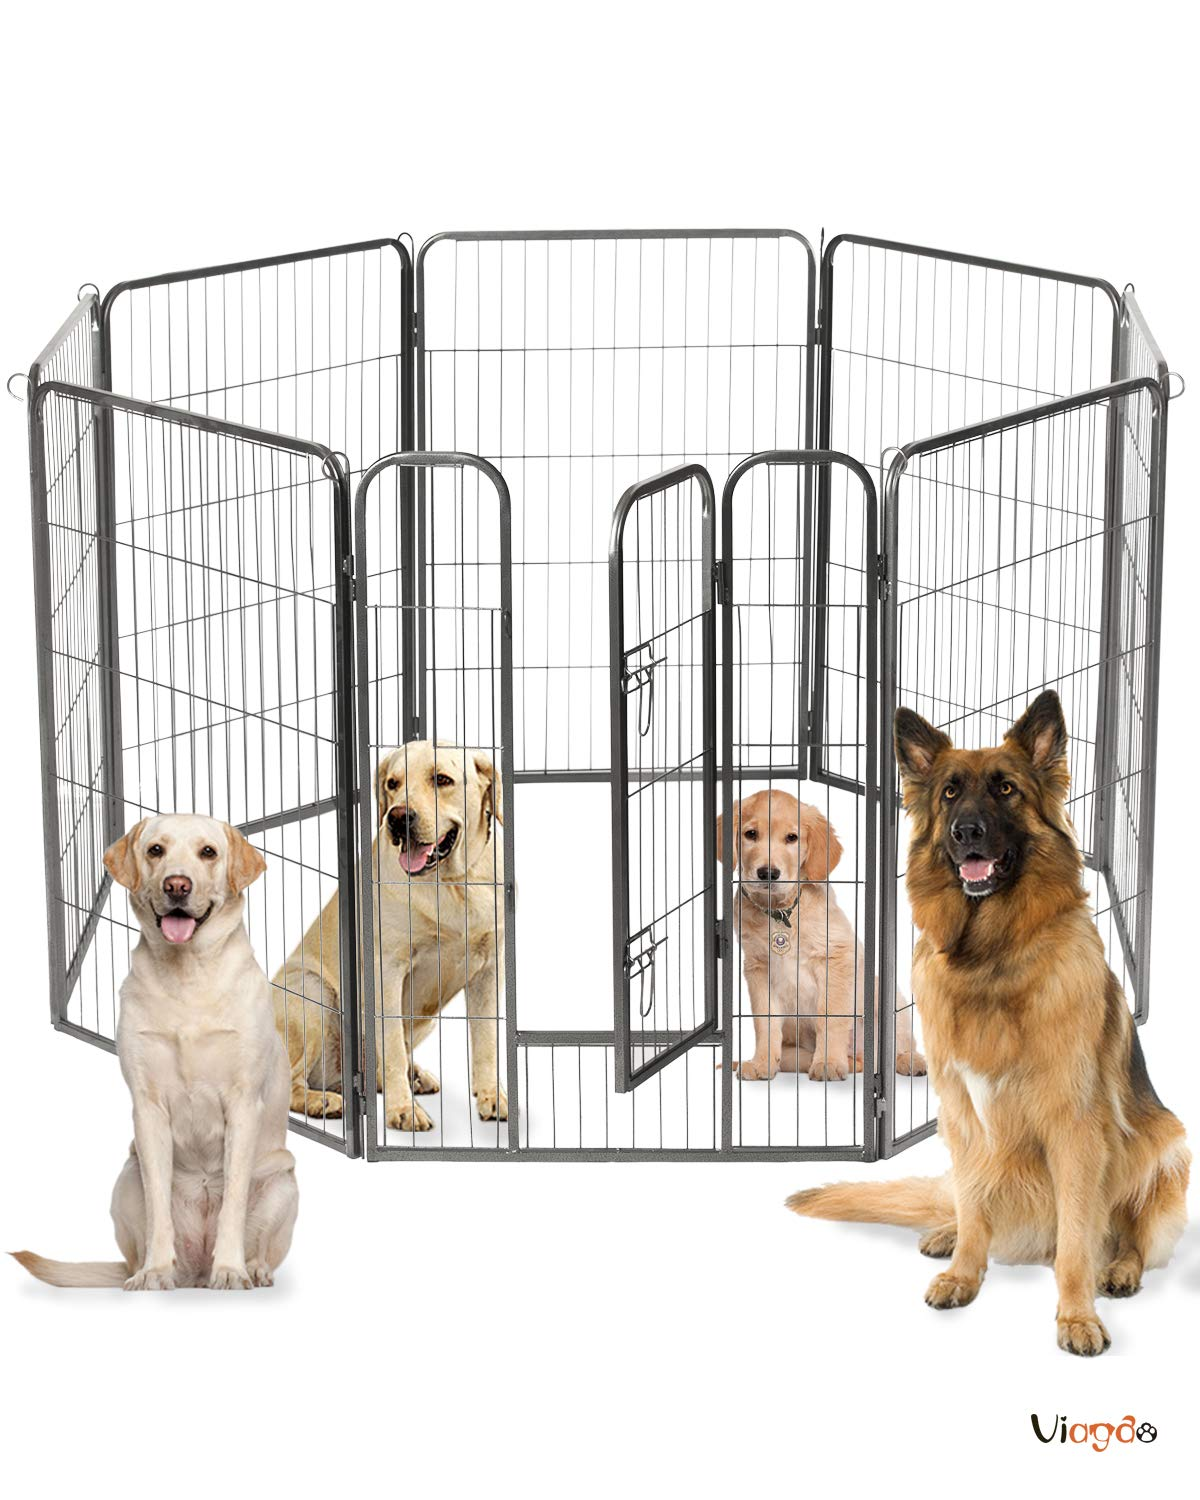 VIAGDO Pet Playpen Dog Pen Fence Playpens for Dogs, Heightening 40 inches Tall, Heavy Duty Foldable Metal Puppy Cat Exercise Fence Barrier Playpen Kennel for Dogs Cats Outdoor & Indoor Use (8 Panel) by VIAGDO